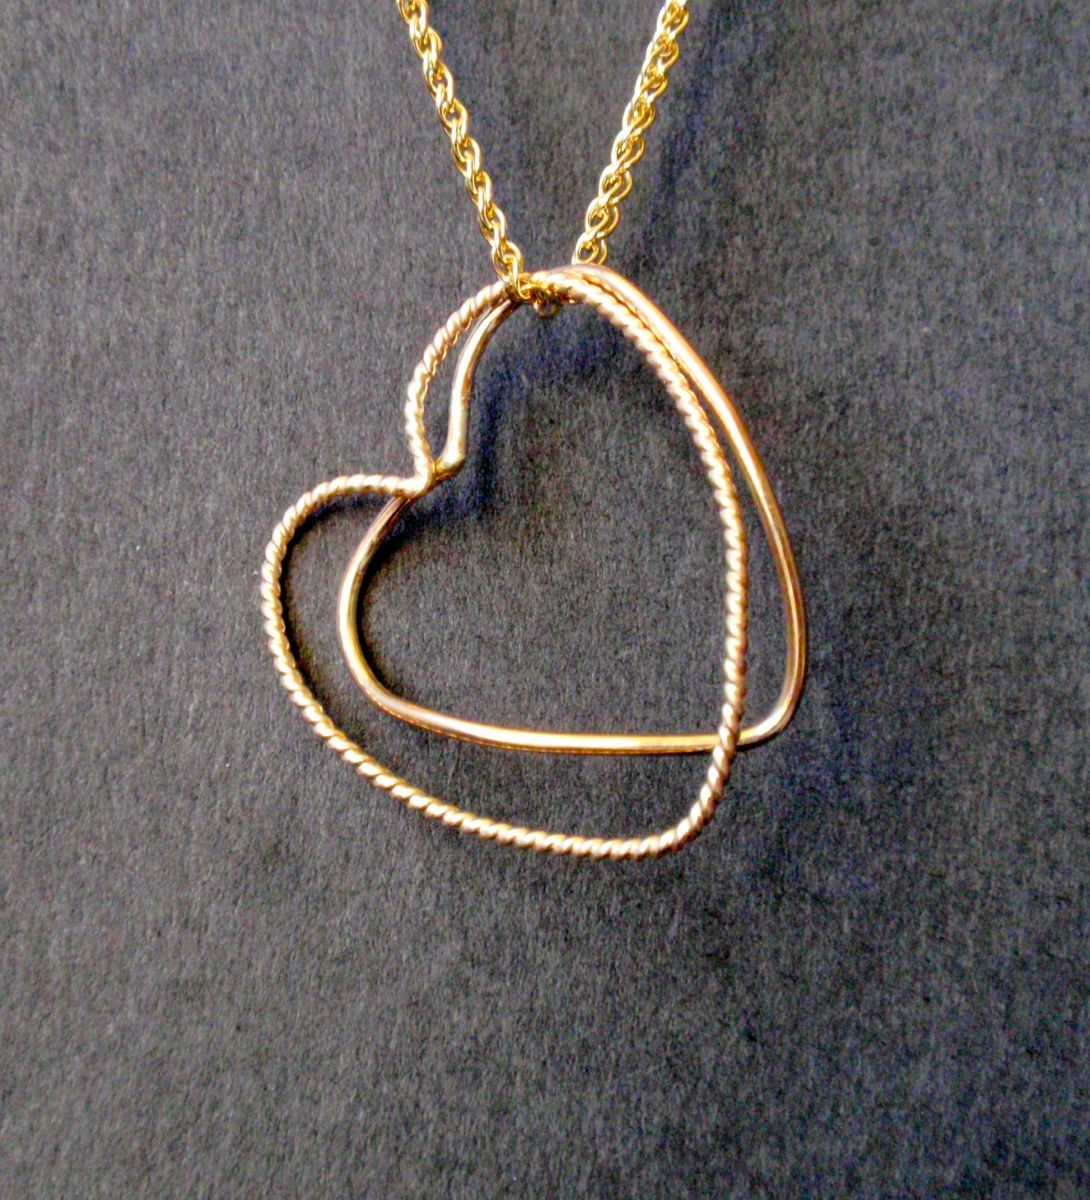 331 - MN Two Hearts, Gold Filled (large view)